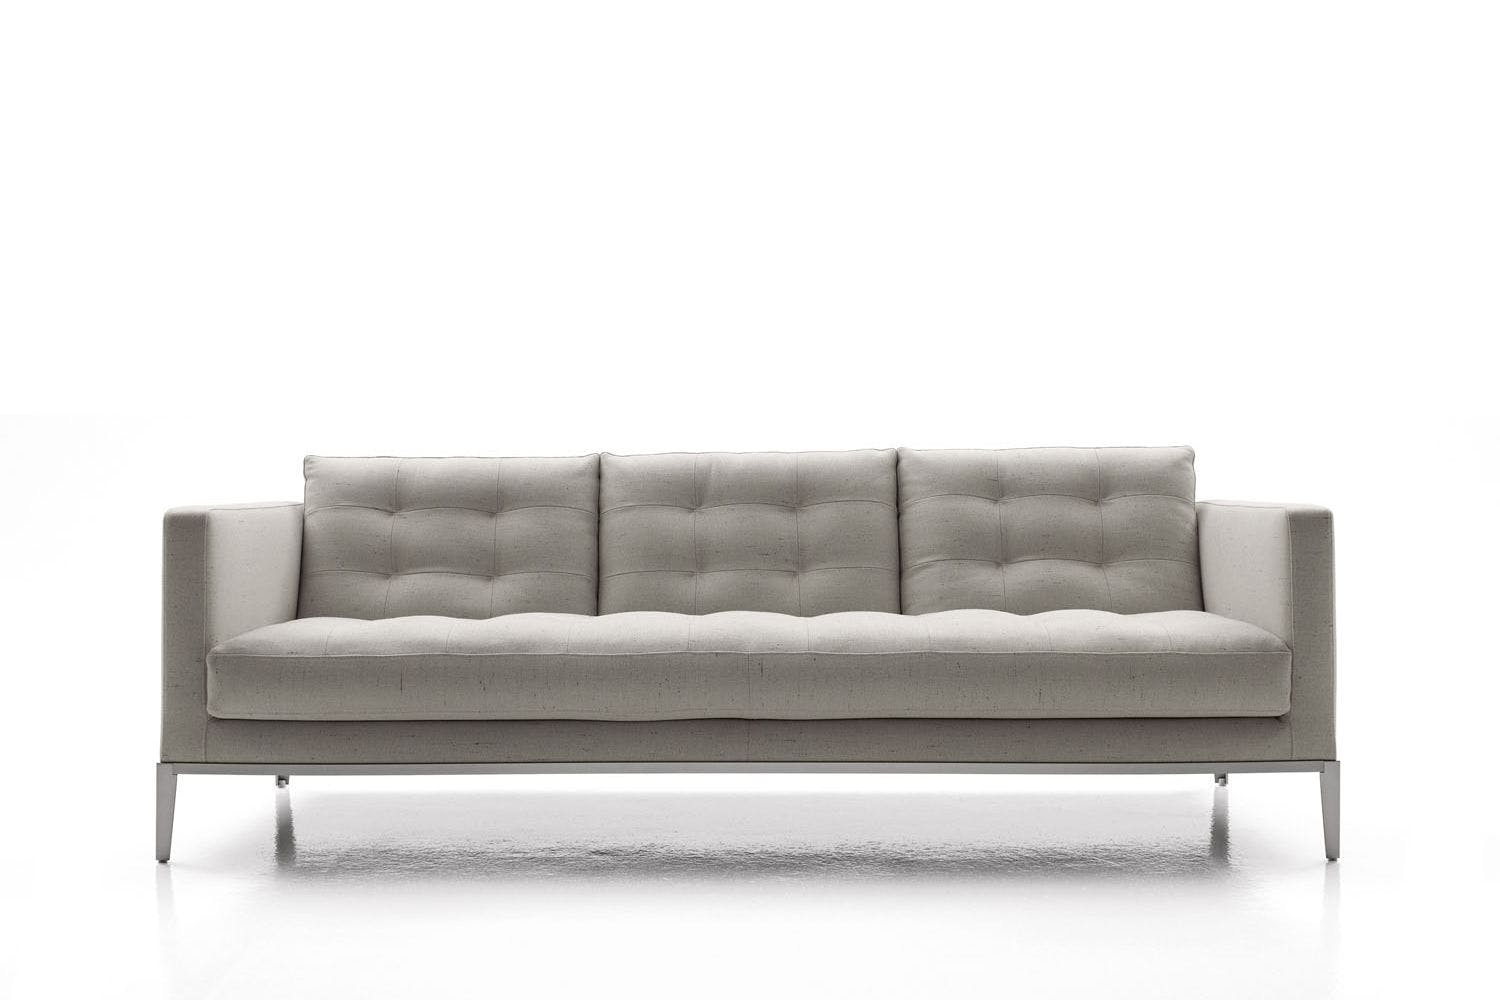 ac lounge sofa by antonio citterio for b b italia project. Black Bedroom Furniture Sets. Home Design Ideas